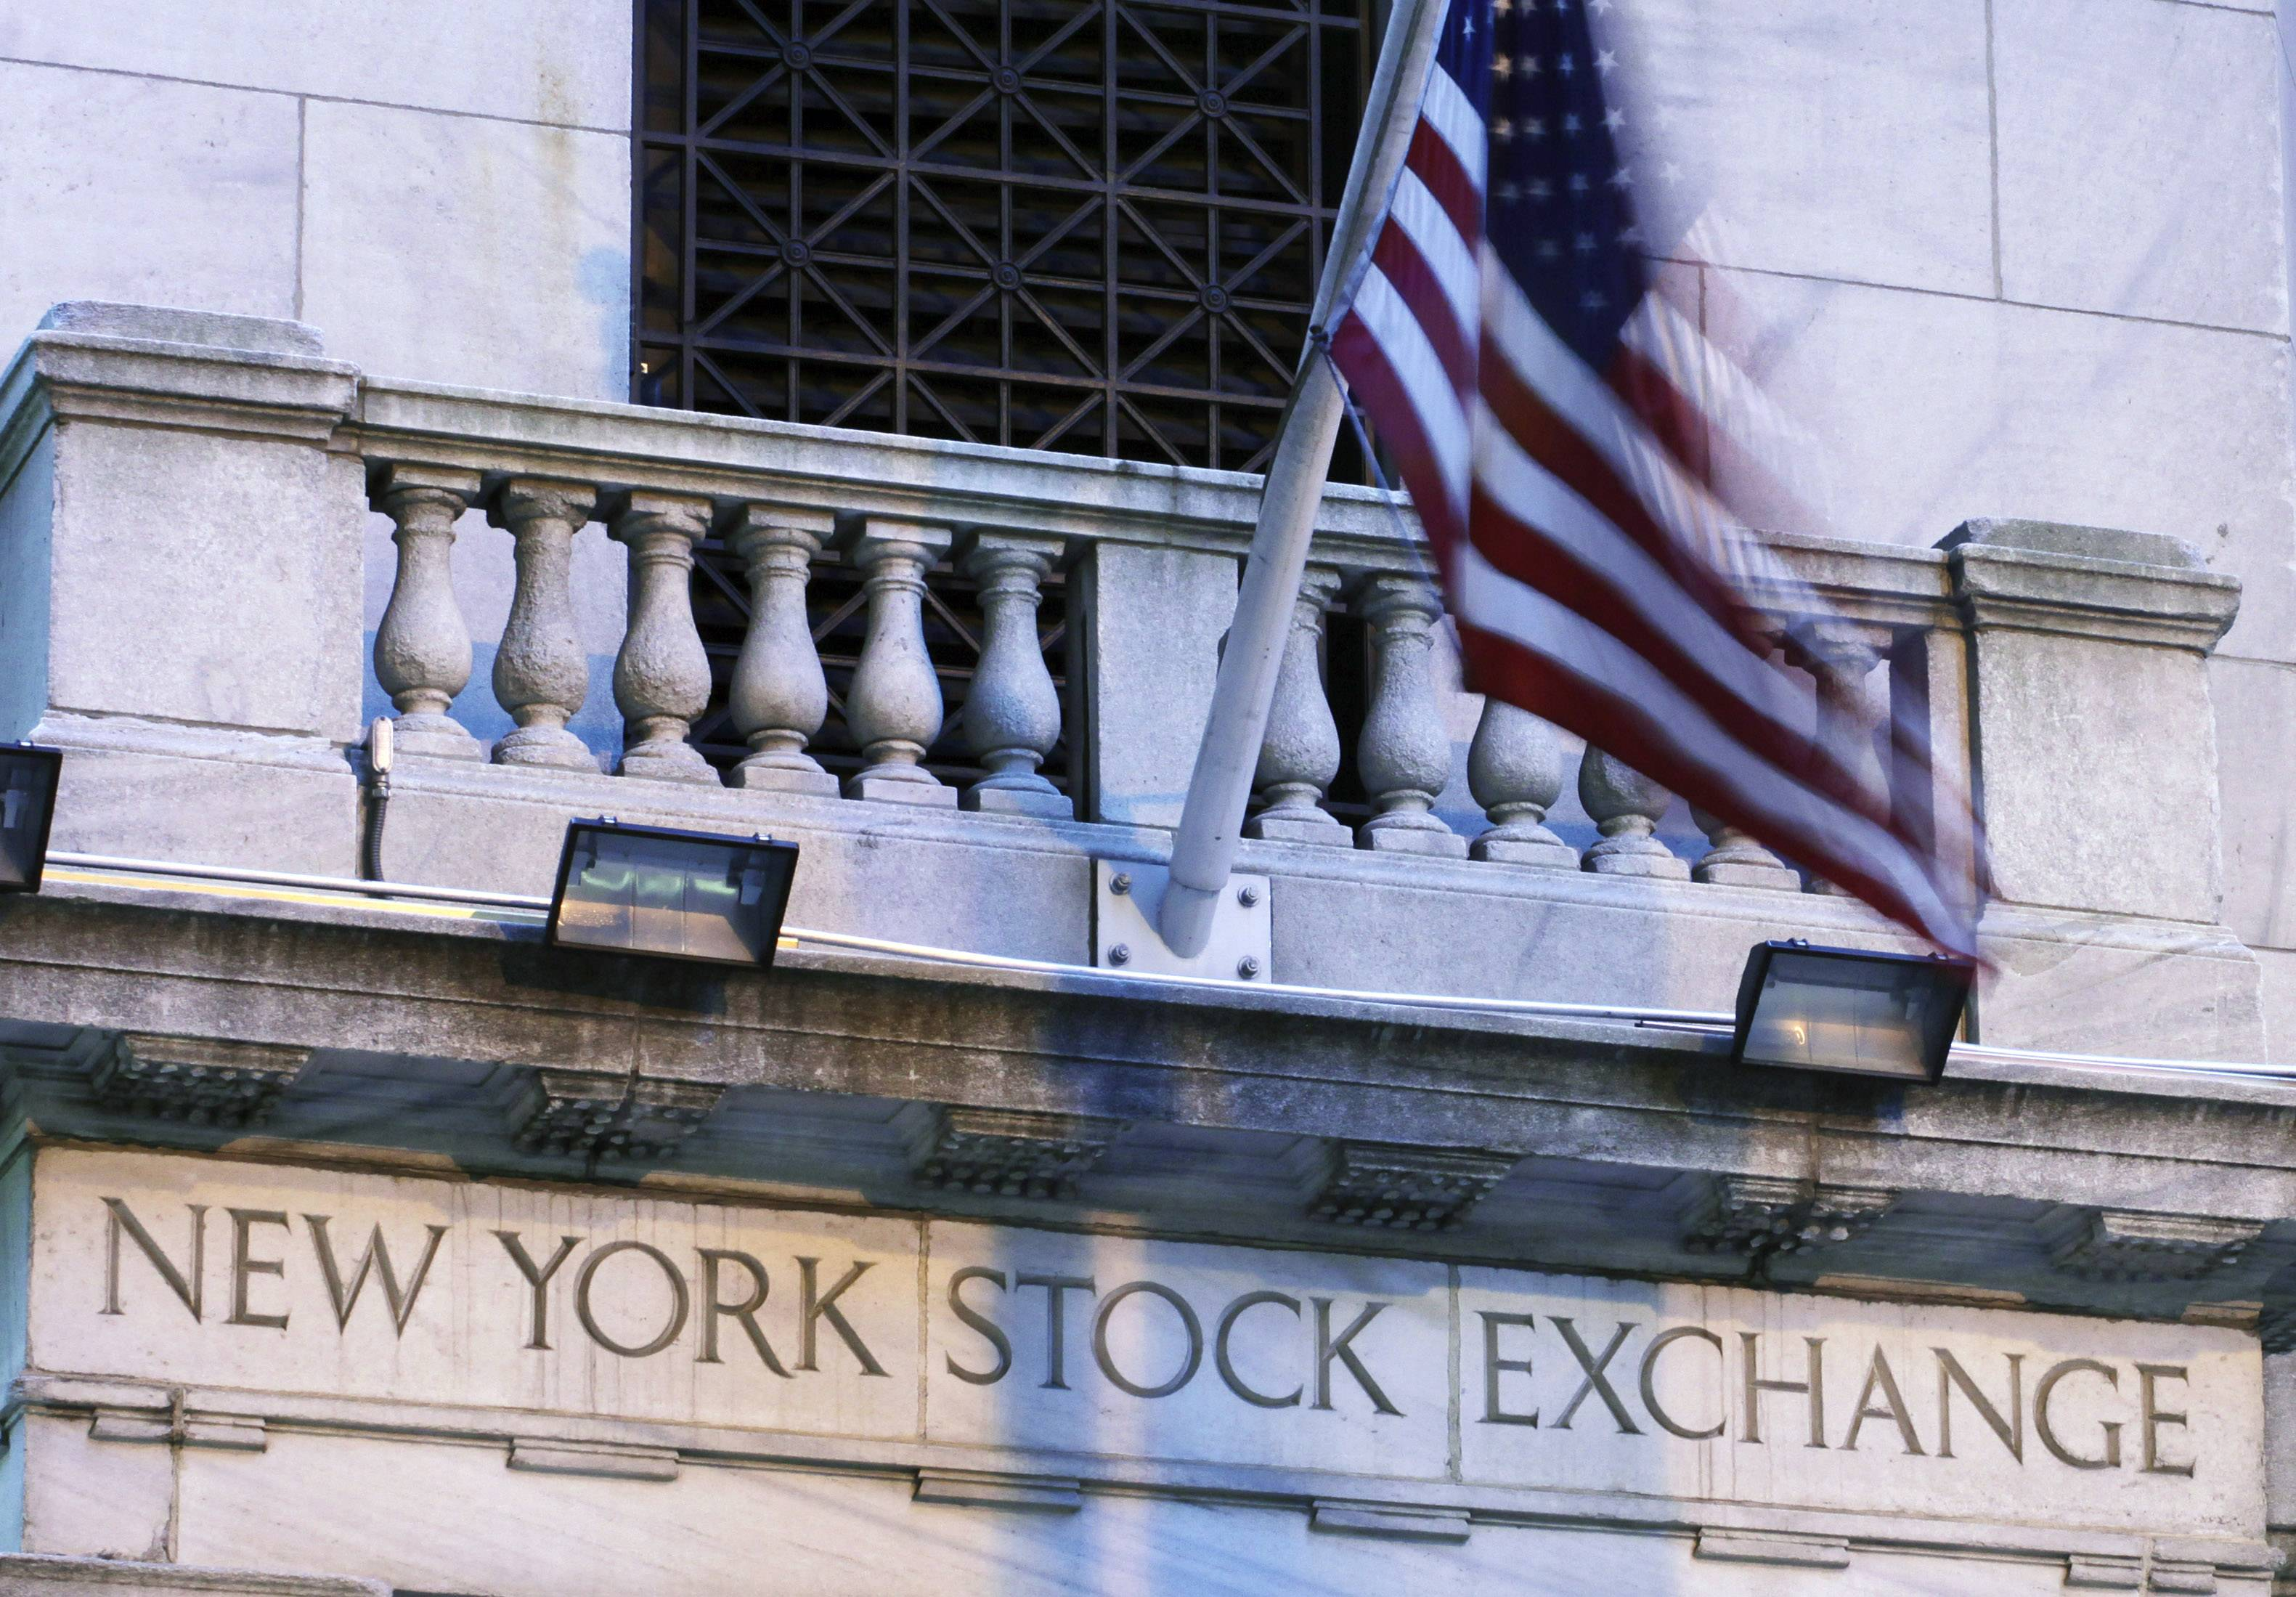 Major U.S. stock indexes ended roughly where they began Thursday, despite investors having to work through a busy day of corporate earnings and two economic reports.